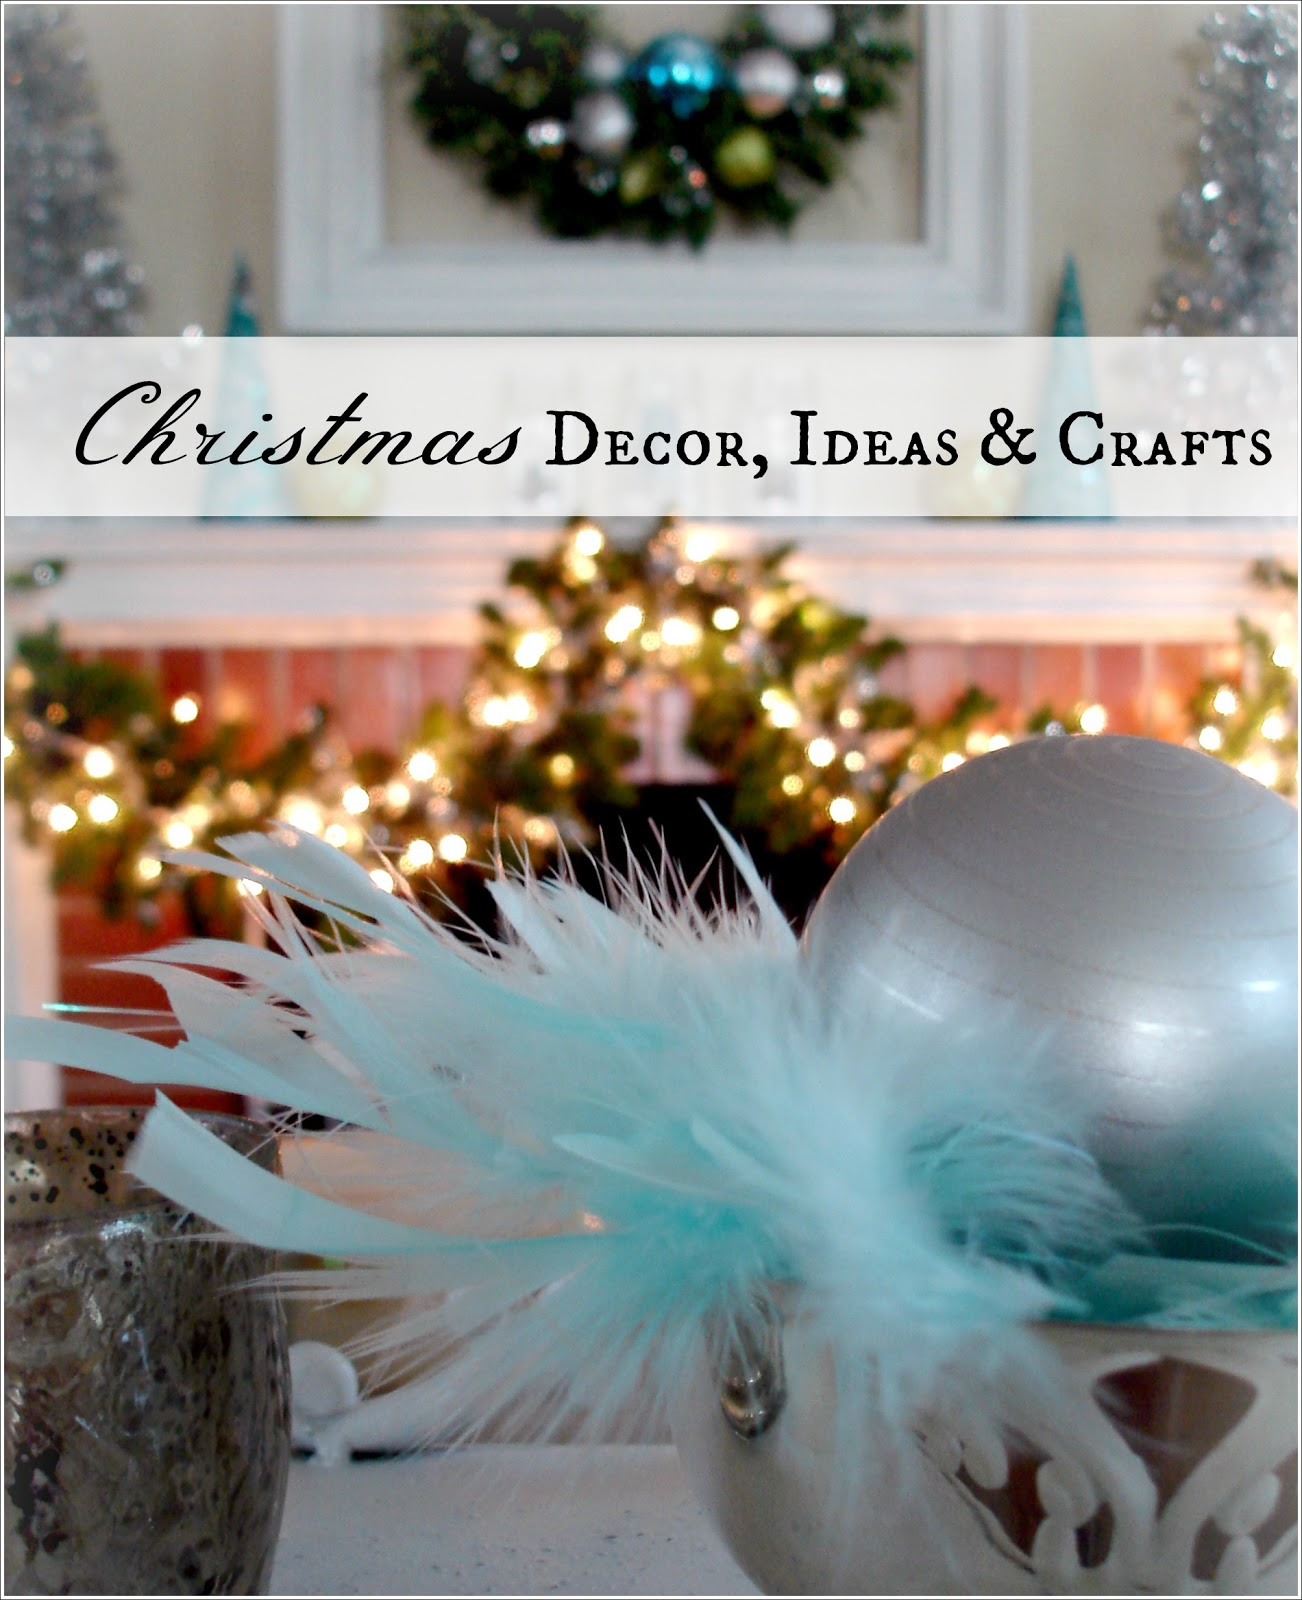 Store With Christmas Decorations: Decorating With Thrift Store Finds {Christmas Edition